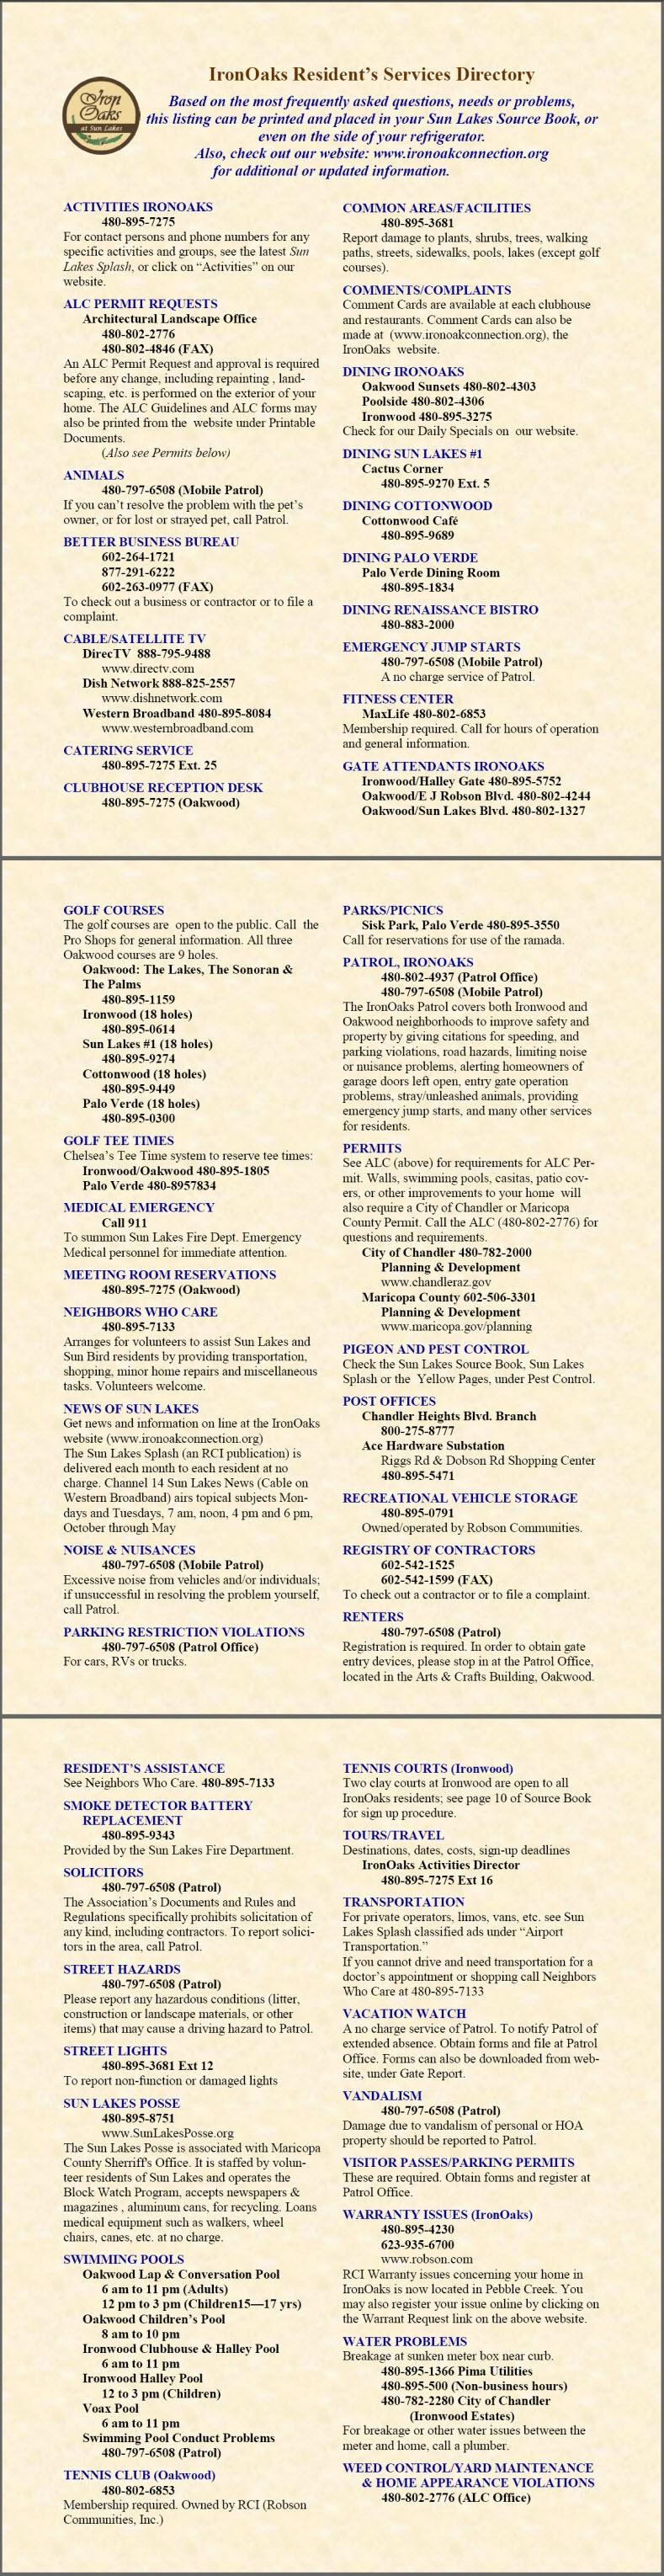 IronOaks Services Directory, Ironwood and Oakwood Country Clubs in Sun Lakes